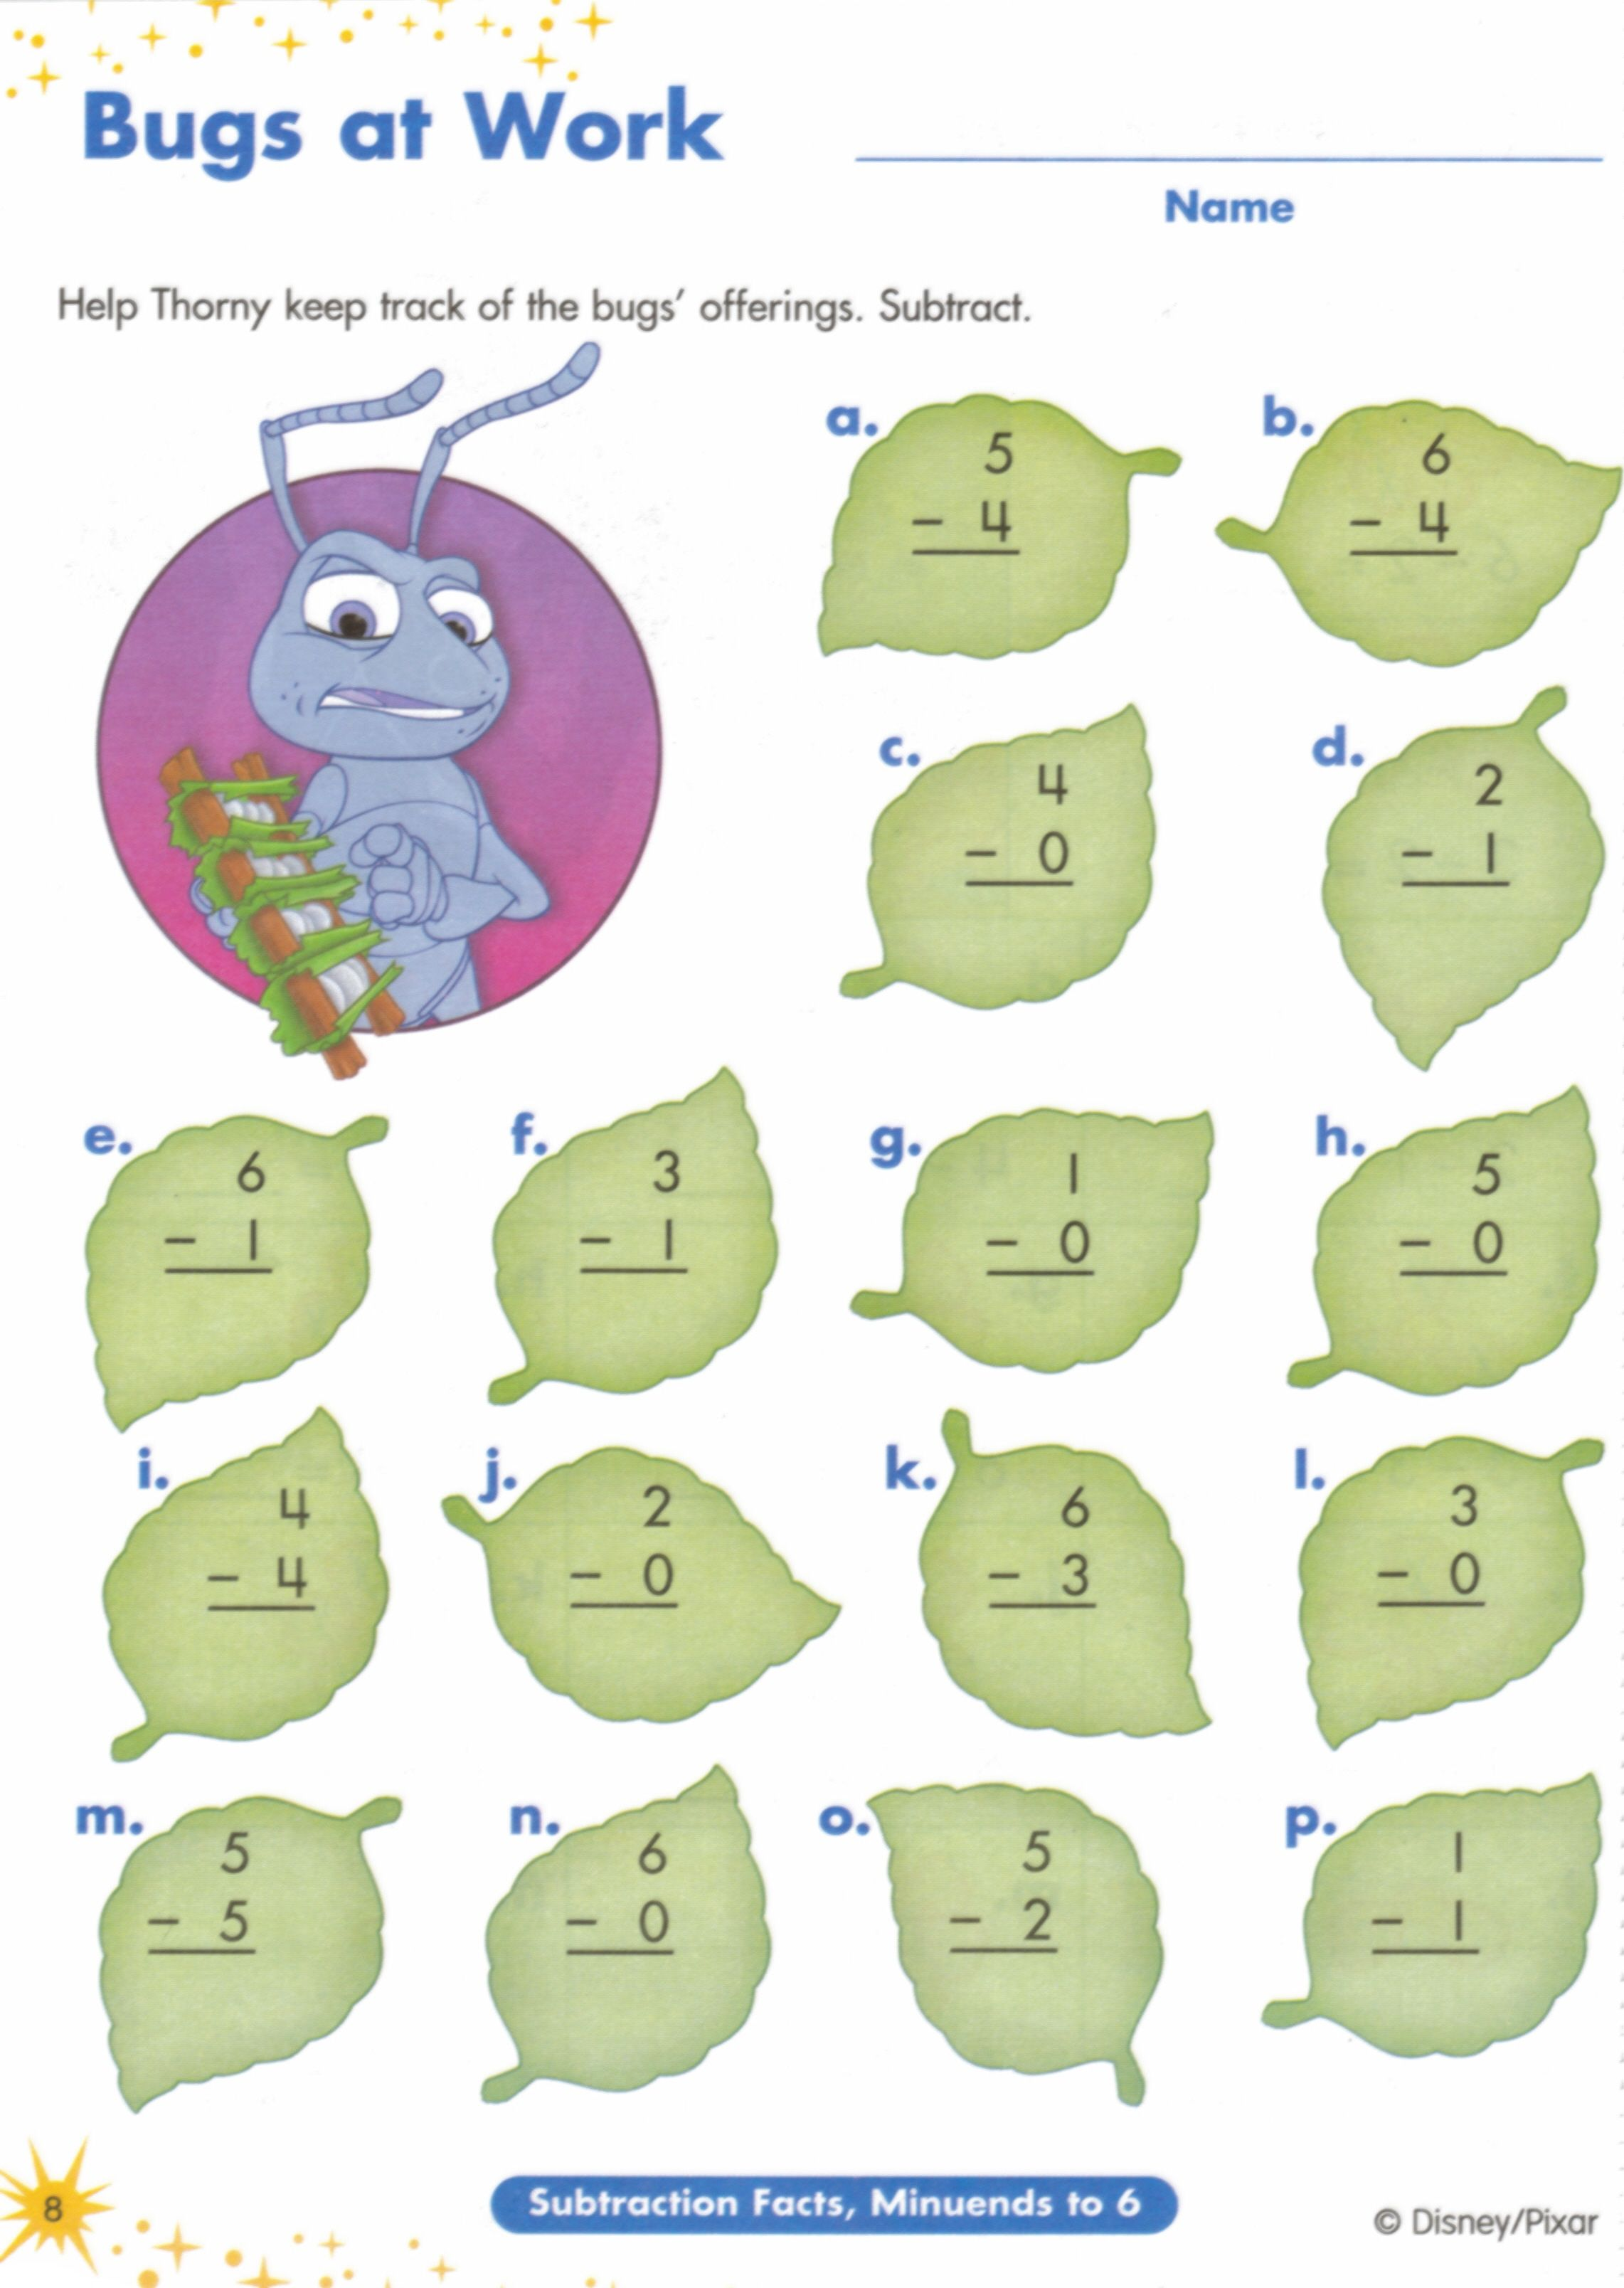 Weirdmailus  Pretty  Images About Worksheets On Pinterest  Fun Facts For Kids  With Outstanding  Images About Worksheets On Pinterest  Fun Facts For Kids Earth Day Worksheets And Jungles With Archaic Math Facts Worksheets First Grade Also Phonics Worksheets Ee Sound In Addition Summer Esl Worksheets And Said Sight Word Worksheet As Well As Recognizing Sentences Worksheet Additionally Simple Binary Ionic Compounds Worksheet  Answers From Pinterestcom With Weirdmailus  Outstanding  Images About Worksheets On Pinterest  Fun Facts For Kids  With Archaic  Images About Worksheets On Pinterest  Fun Facts For Kids Earth Day Worksheets And Jungles And Pretty Math Facts Worksheets First Grade Also Phonics Worksheets Ee Sound In Addition Summer Esl Worksheets From Pinterestcom